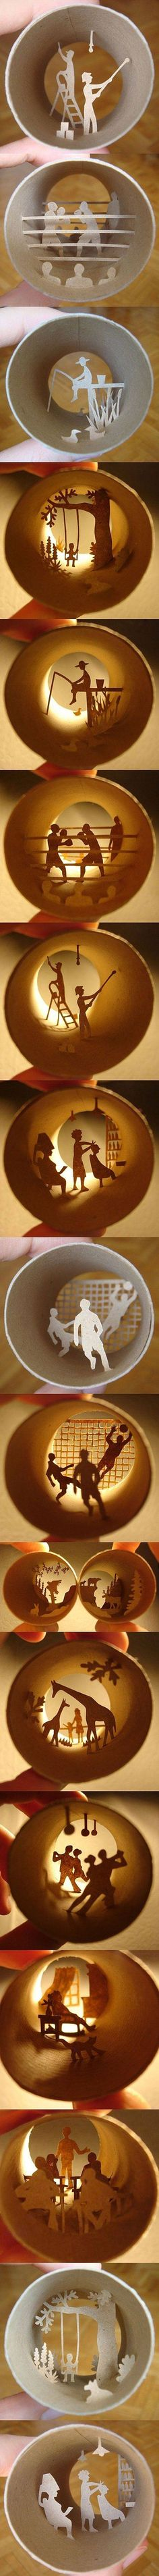 Toilet Paper Roll Scenes (by Imgur)